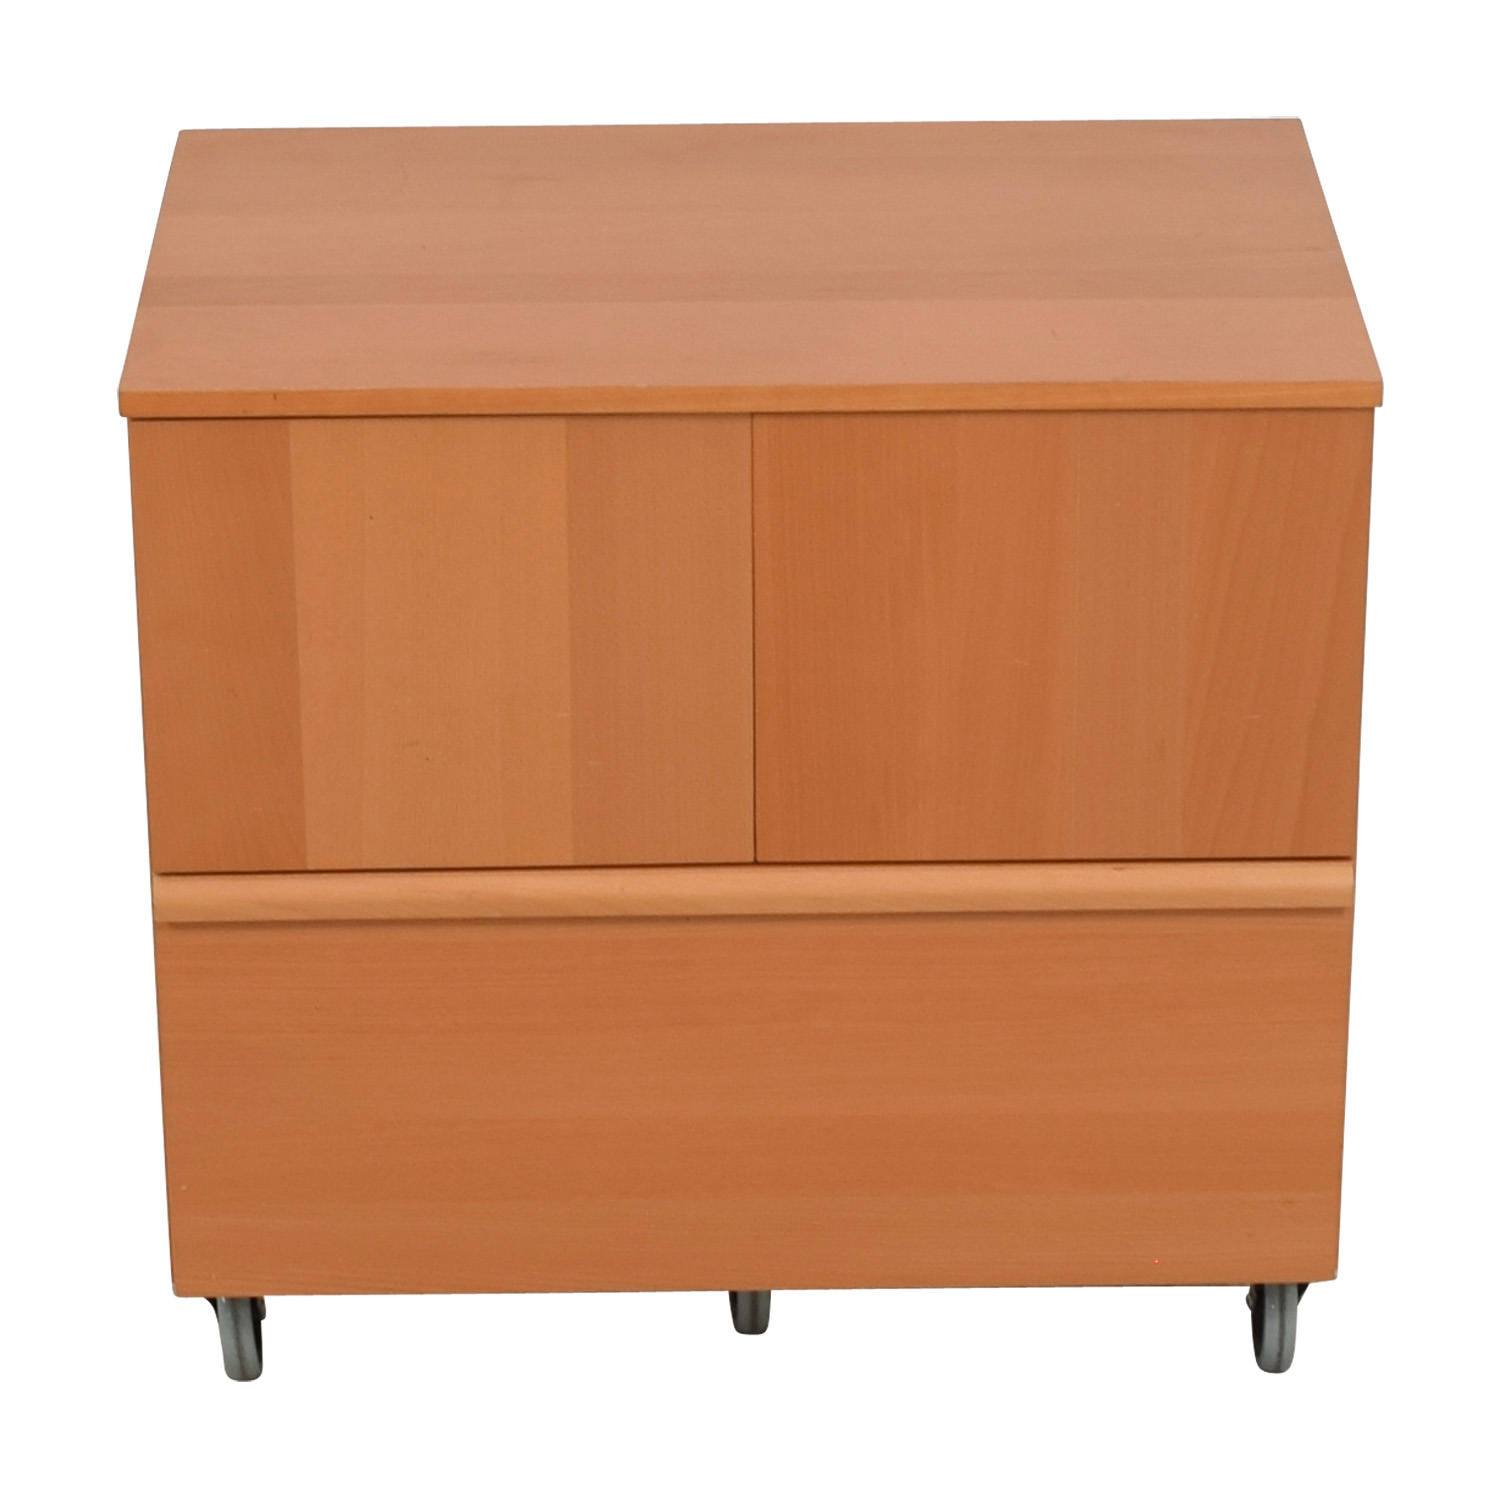 Ikea ikea file cabinet with storage dimensions